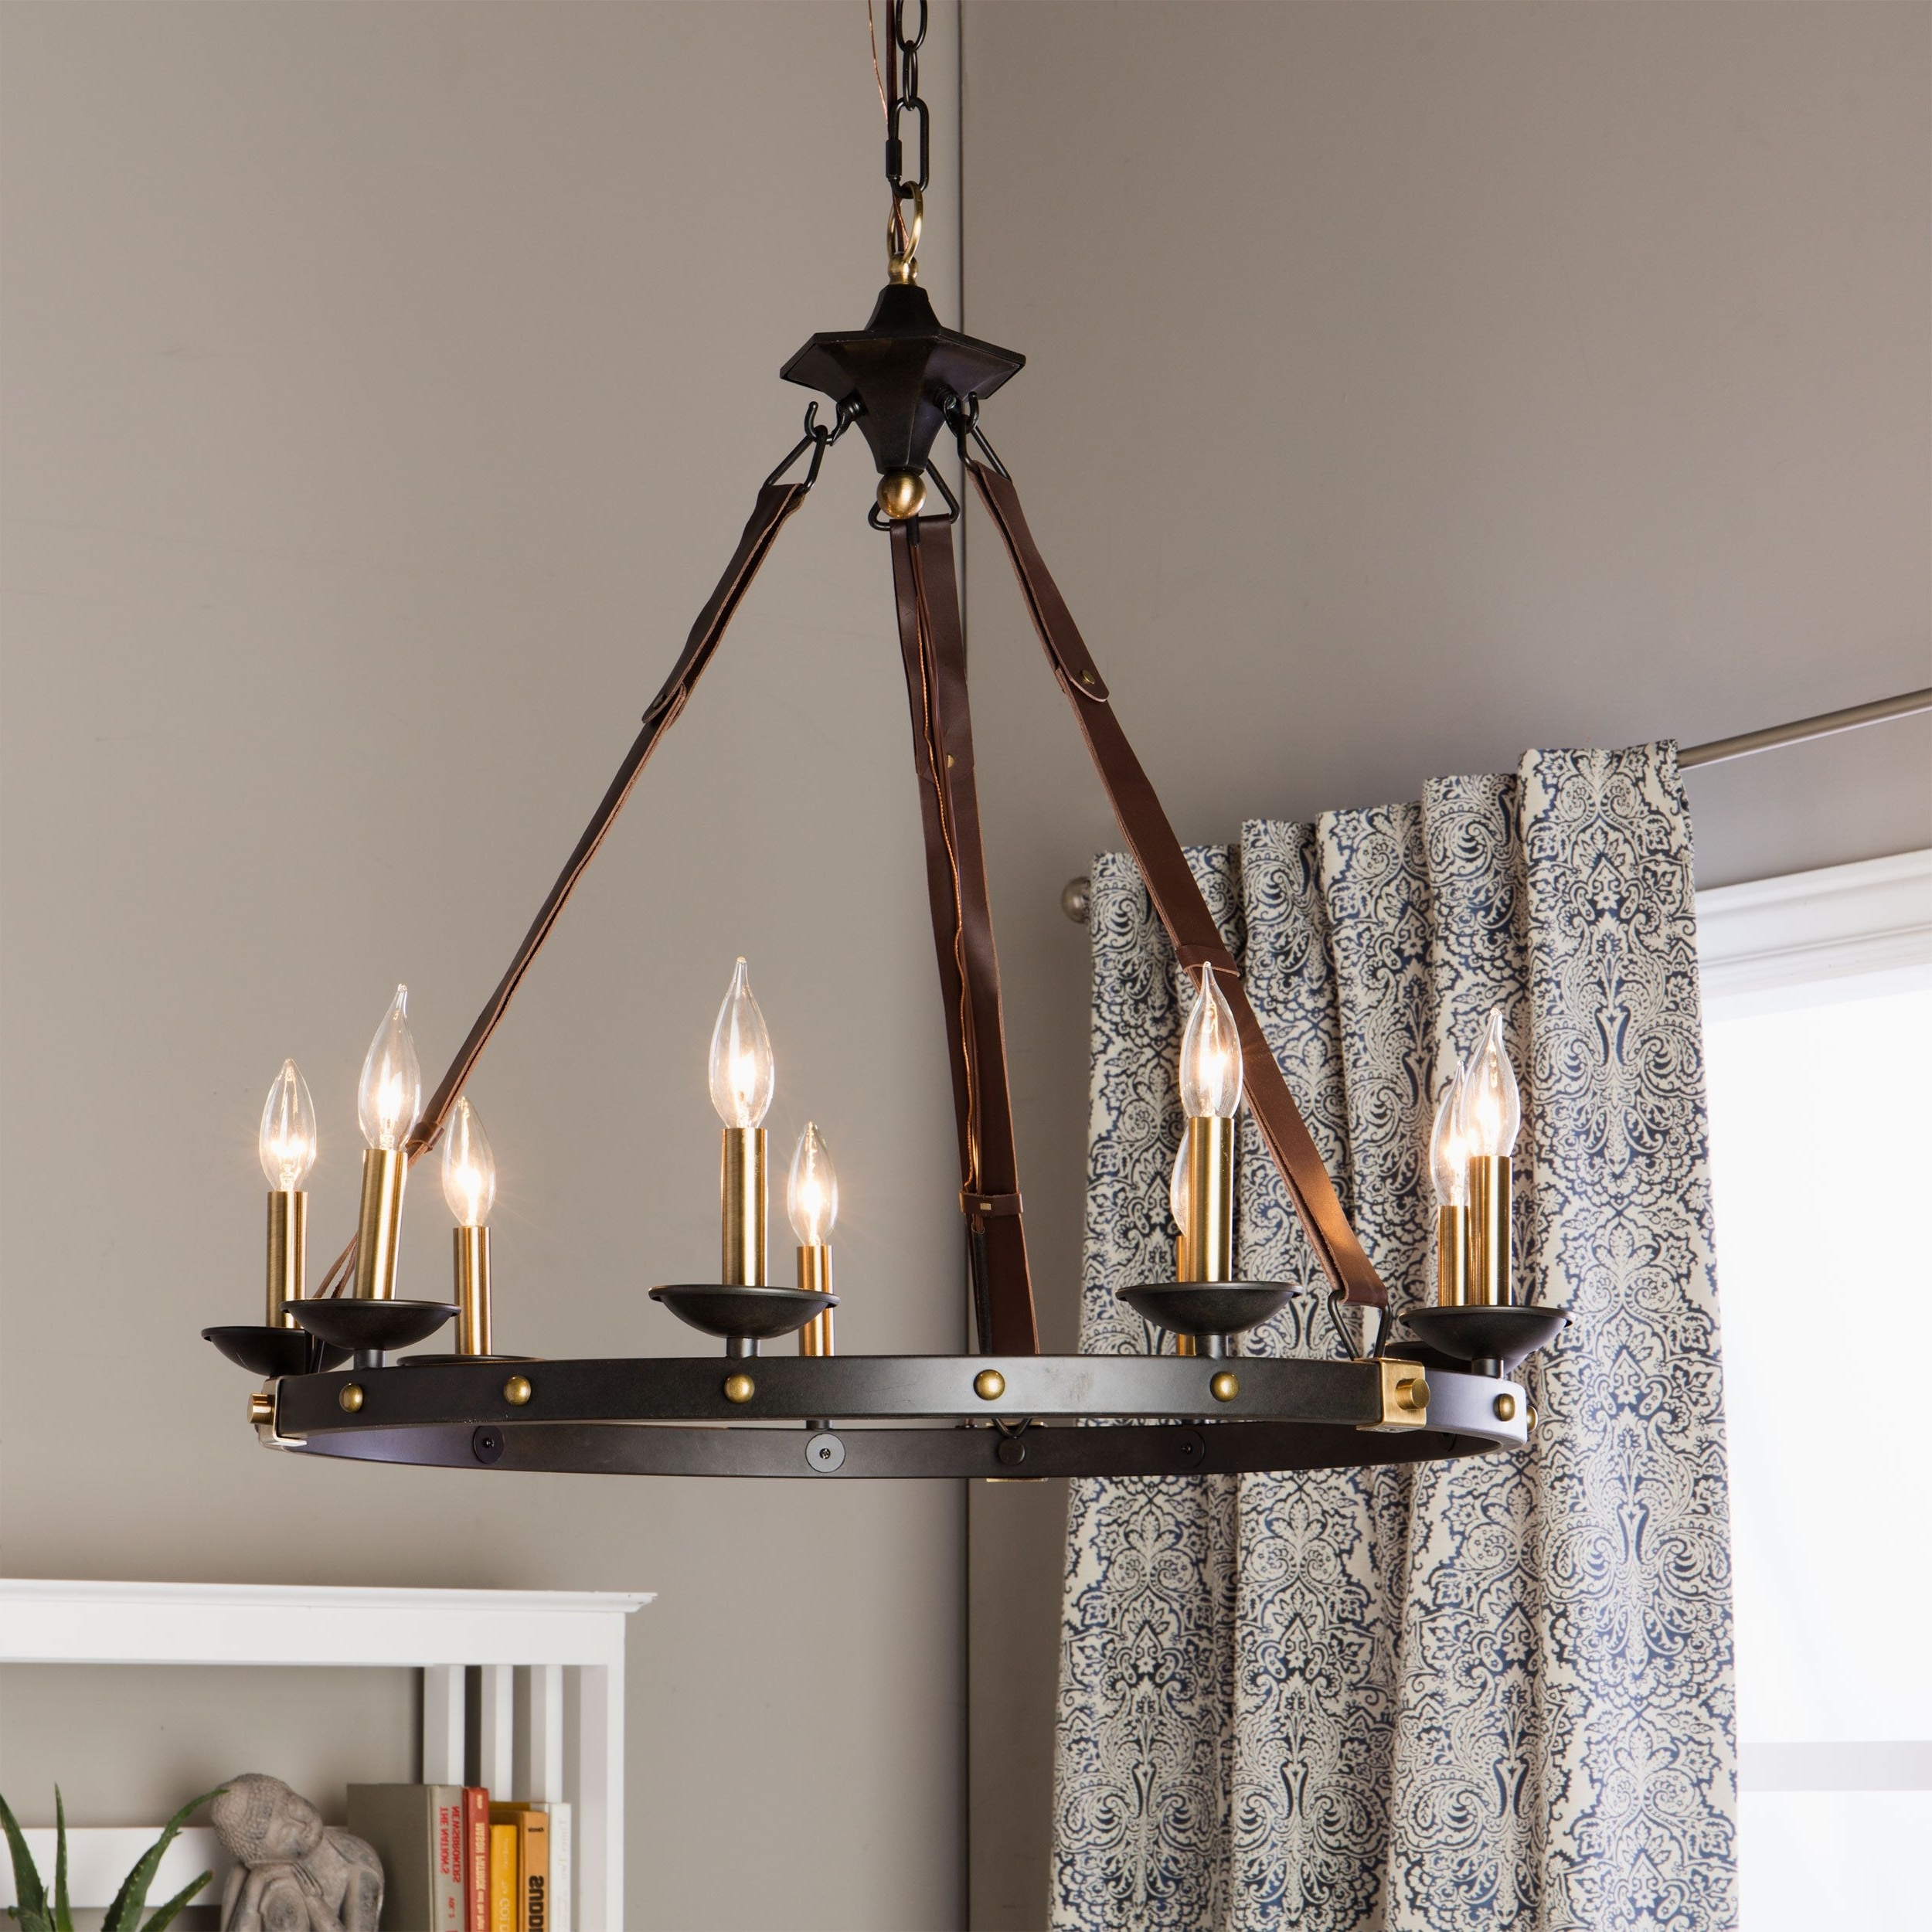 Large Black Chandelier Pertaining To 2018 Rustic Meets Contemporary In This Beautiful Cavalier Chandelier (View 8 of 20)